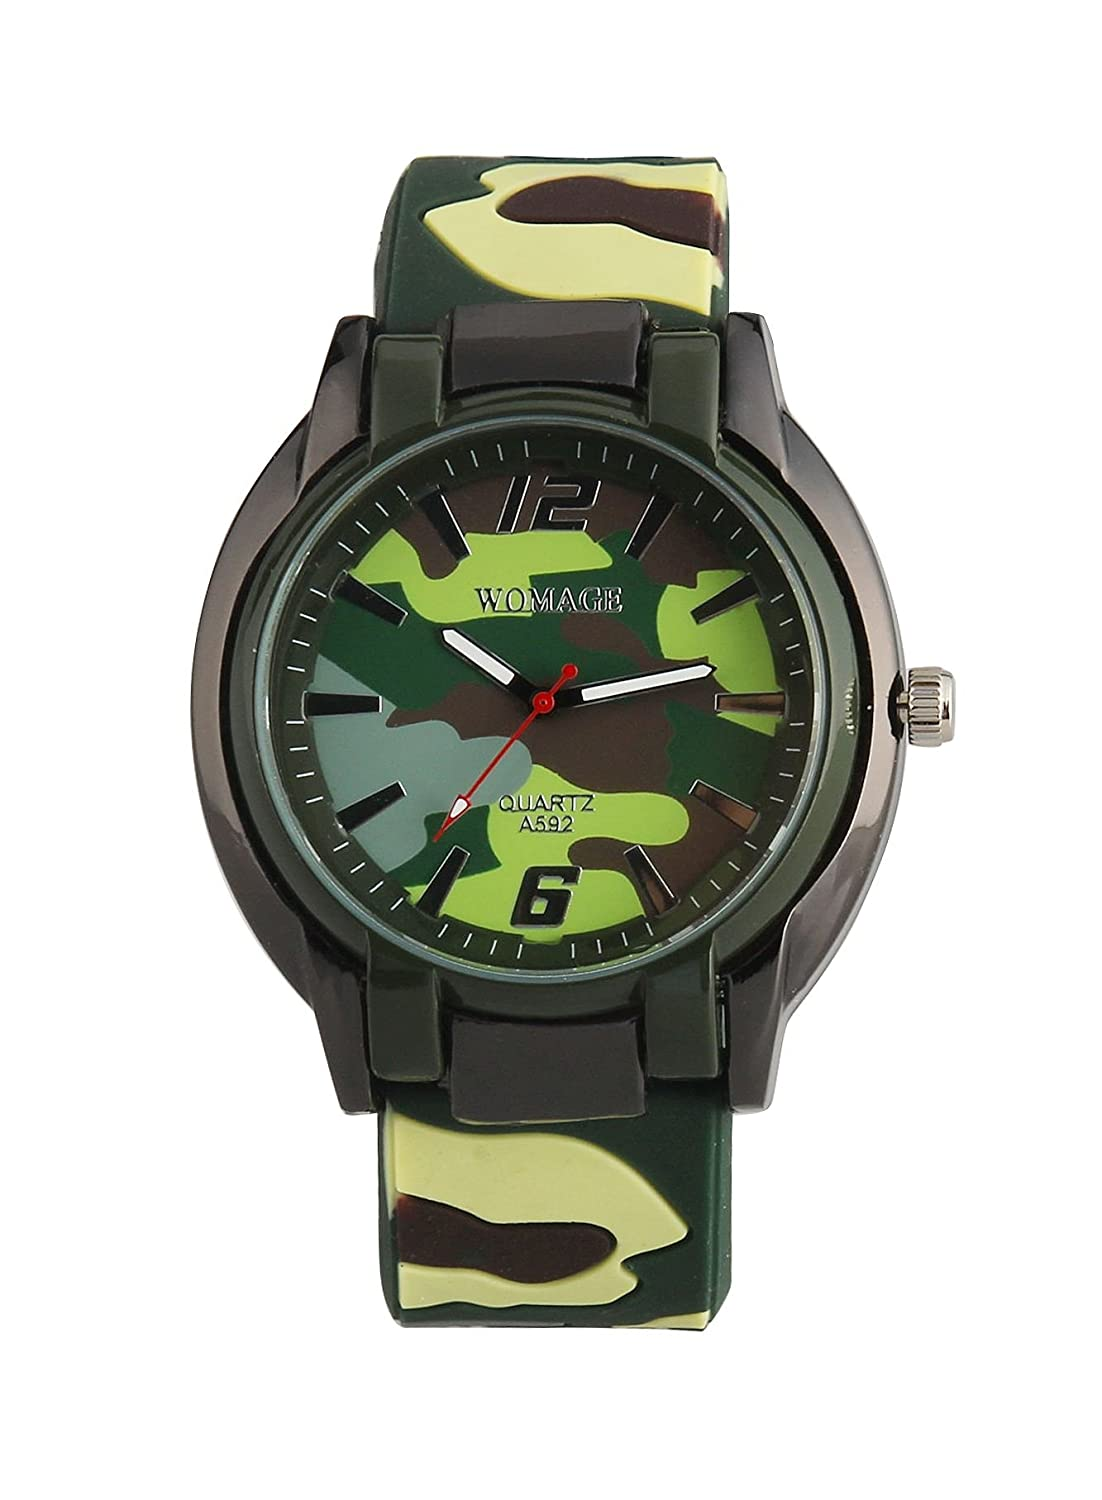 Amazon.com: ShoppeWatch Mens Big Face Watch Green Camouflage Silicone Band Reloj de Hombre SWA592CAMO: Watches